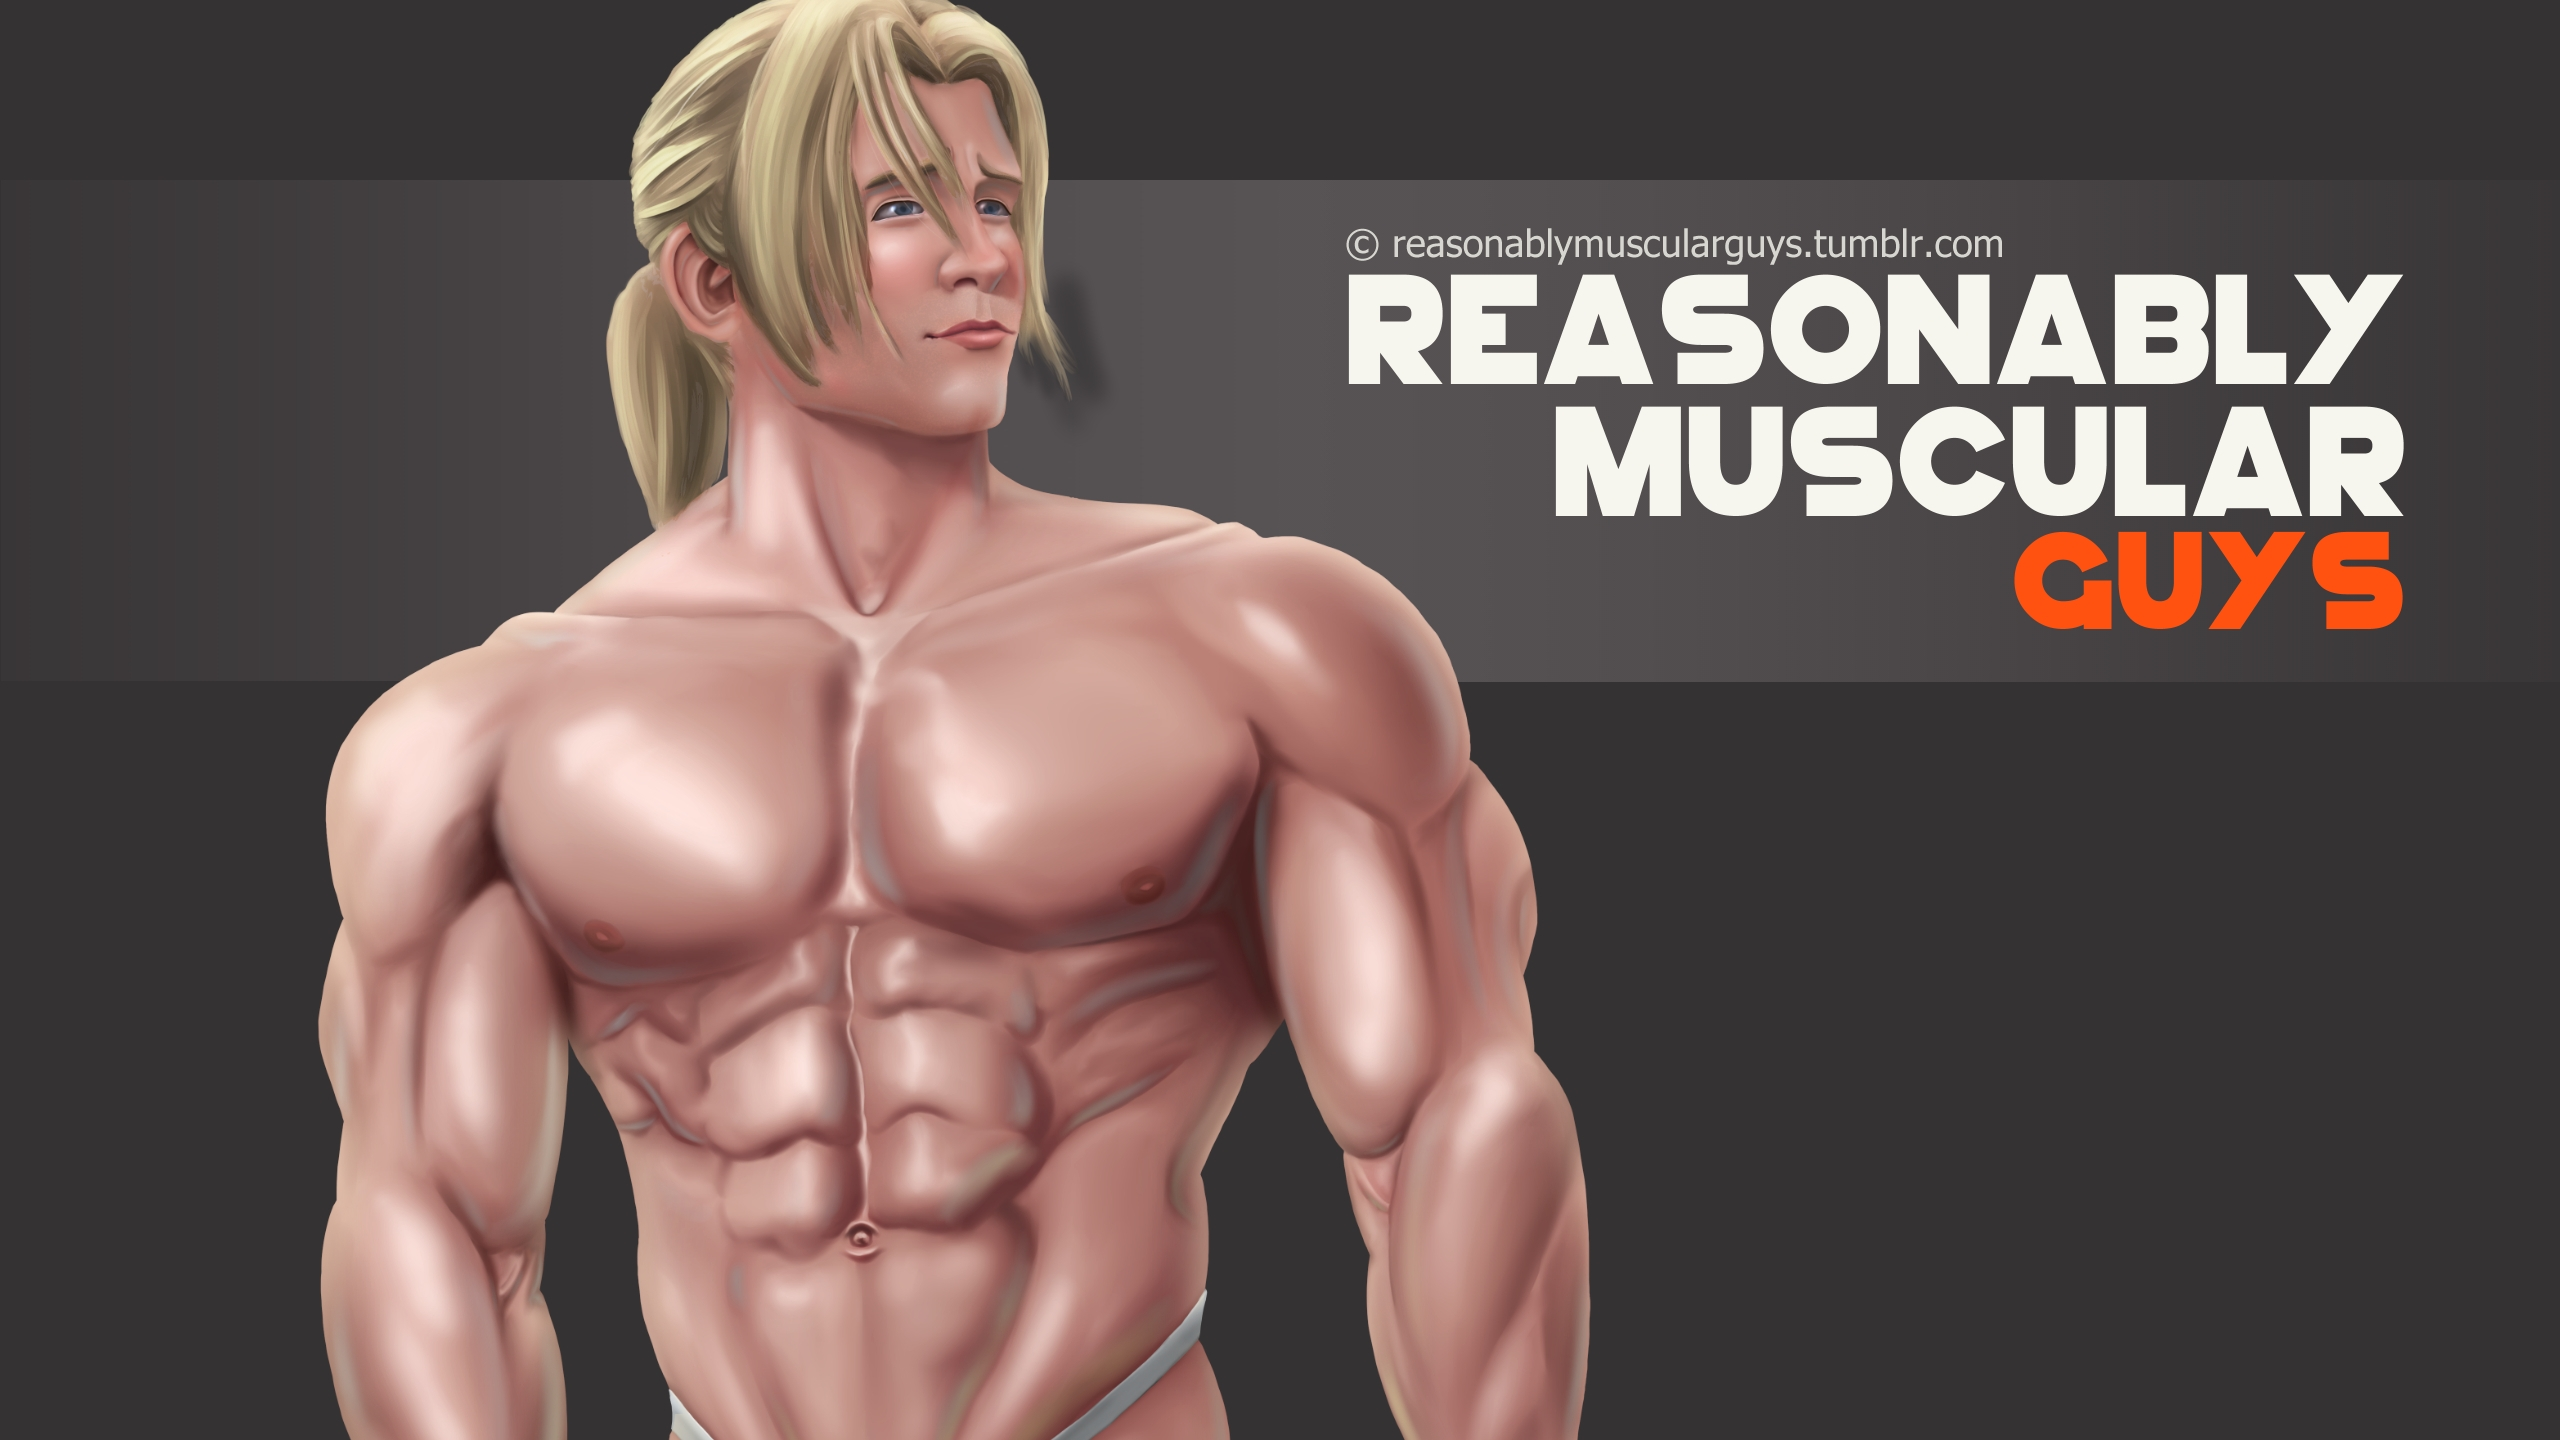 Reasonably Muscular  (@reasonablymuscularguys) Cover Image